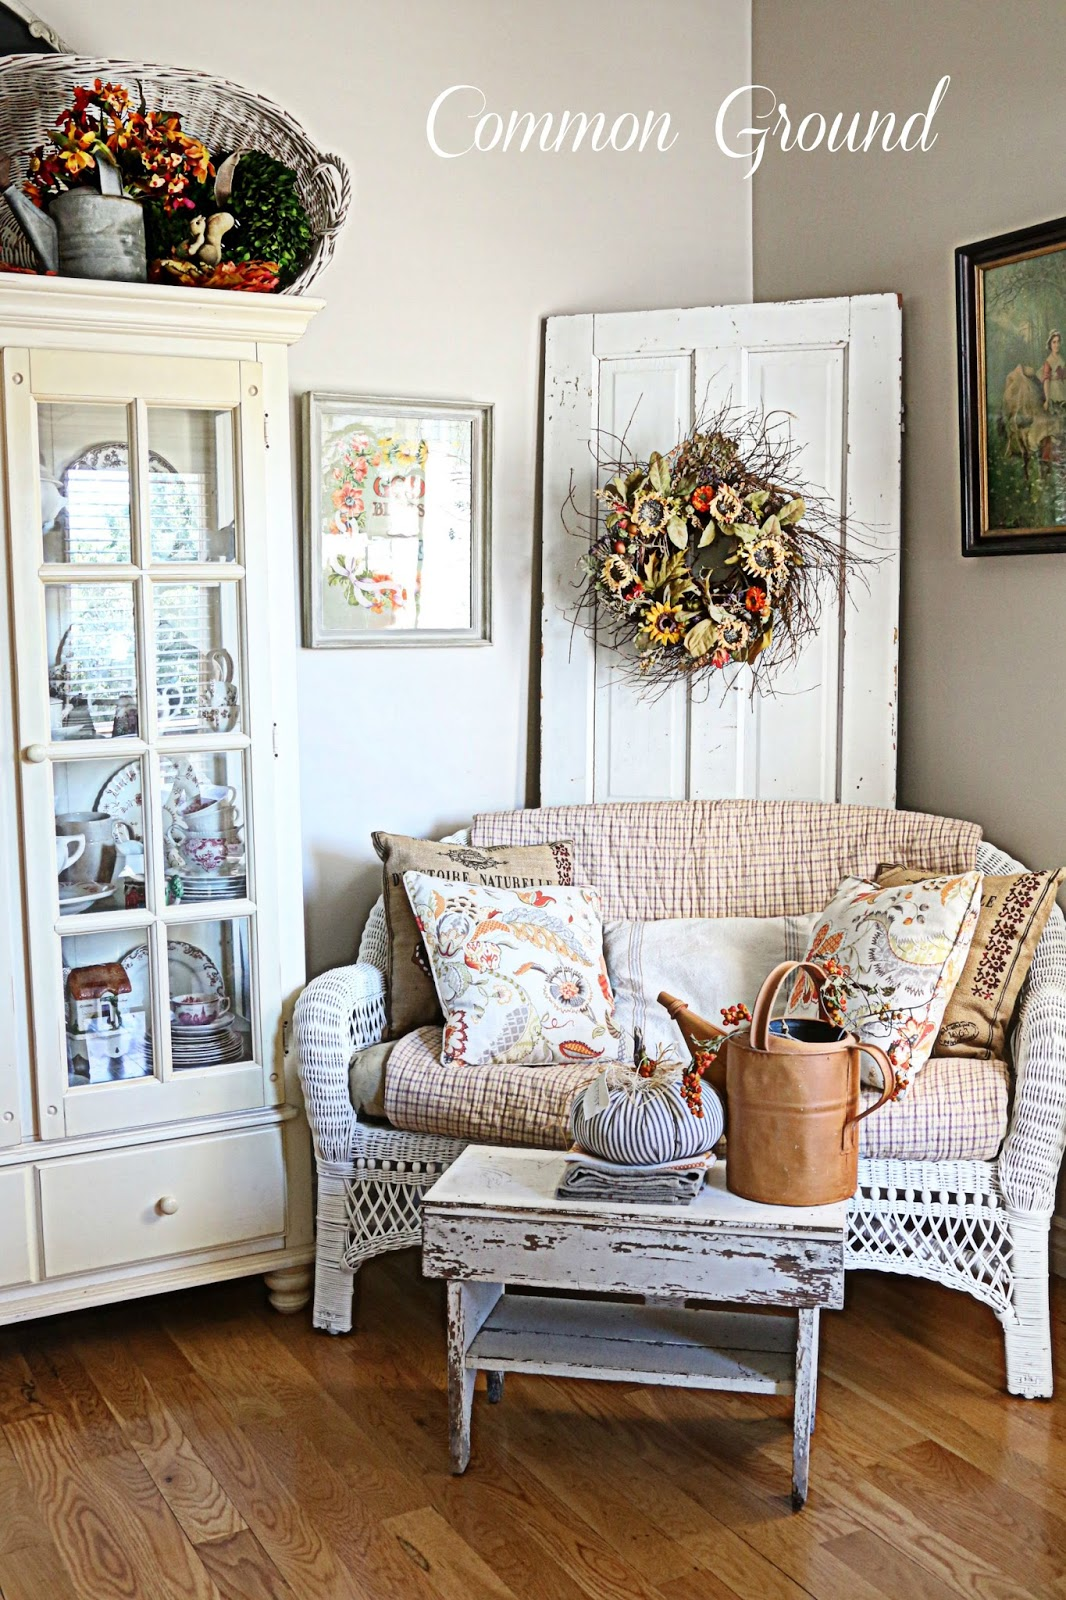 Kitchen Sitting Rooms Designs: Common Ground : Kitchen Sitting Area Dressed For Fall